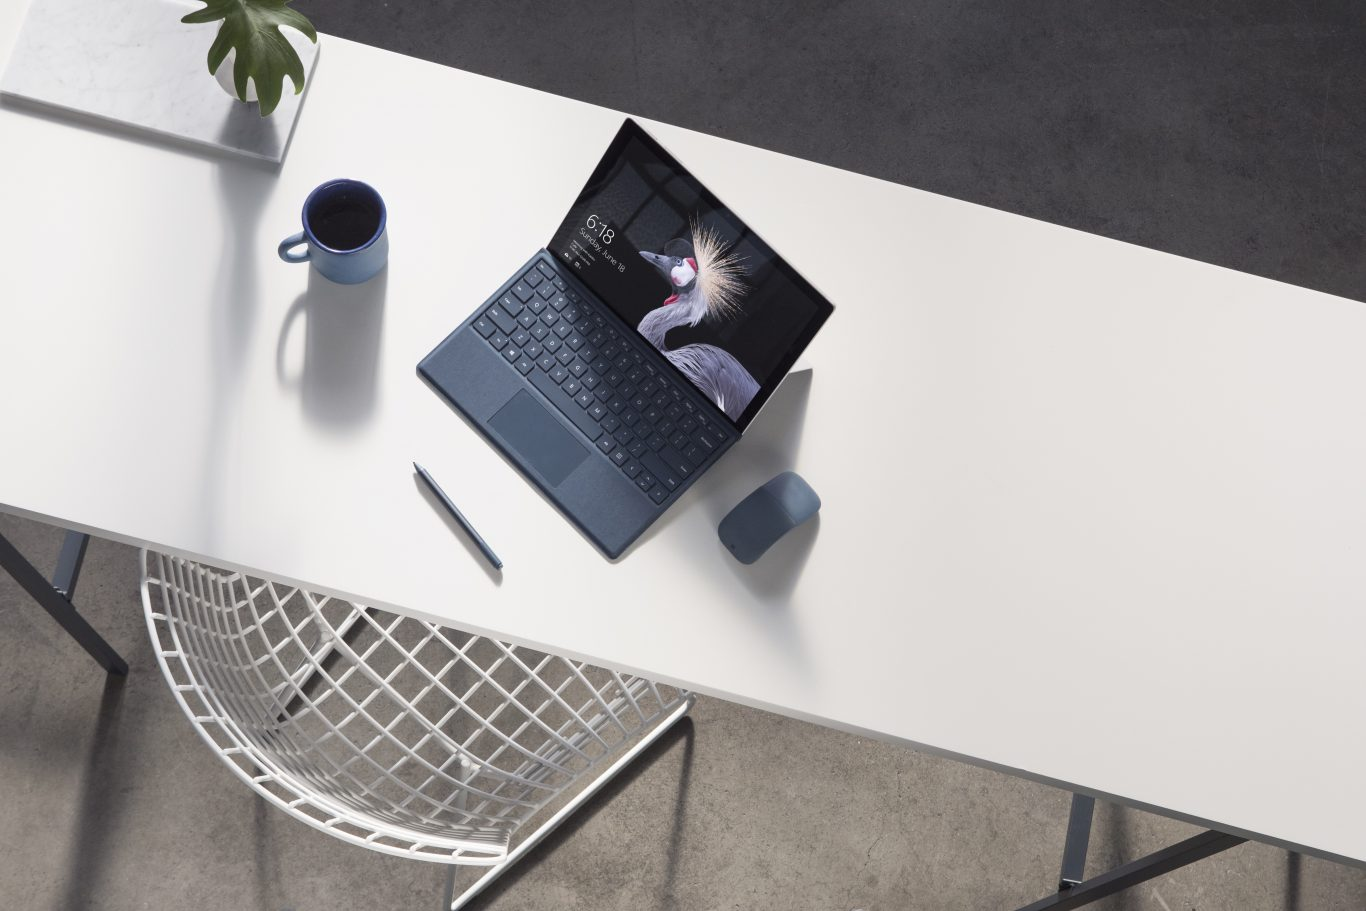 MicrosoftSurfacedevices launchingin South Africa